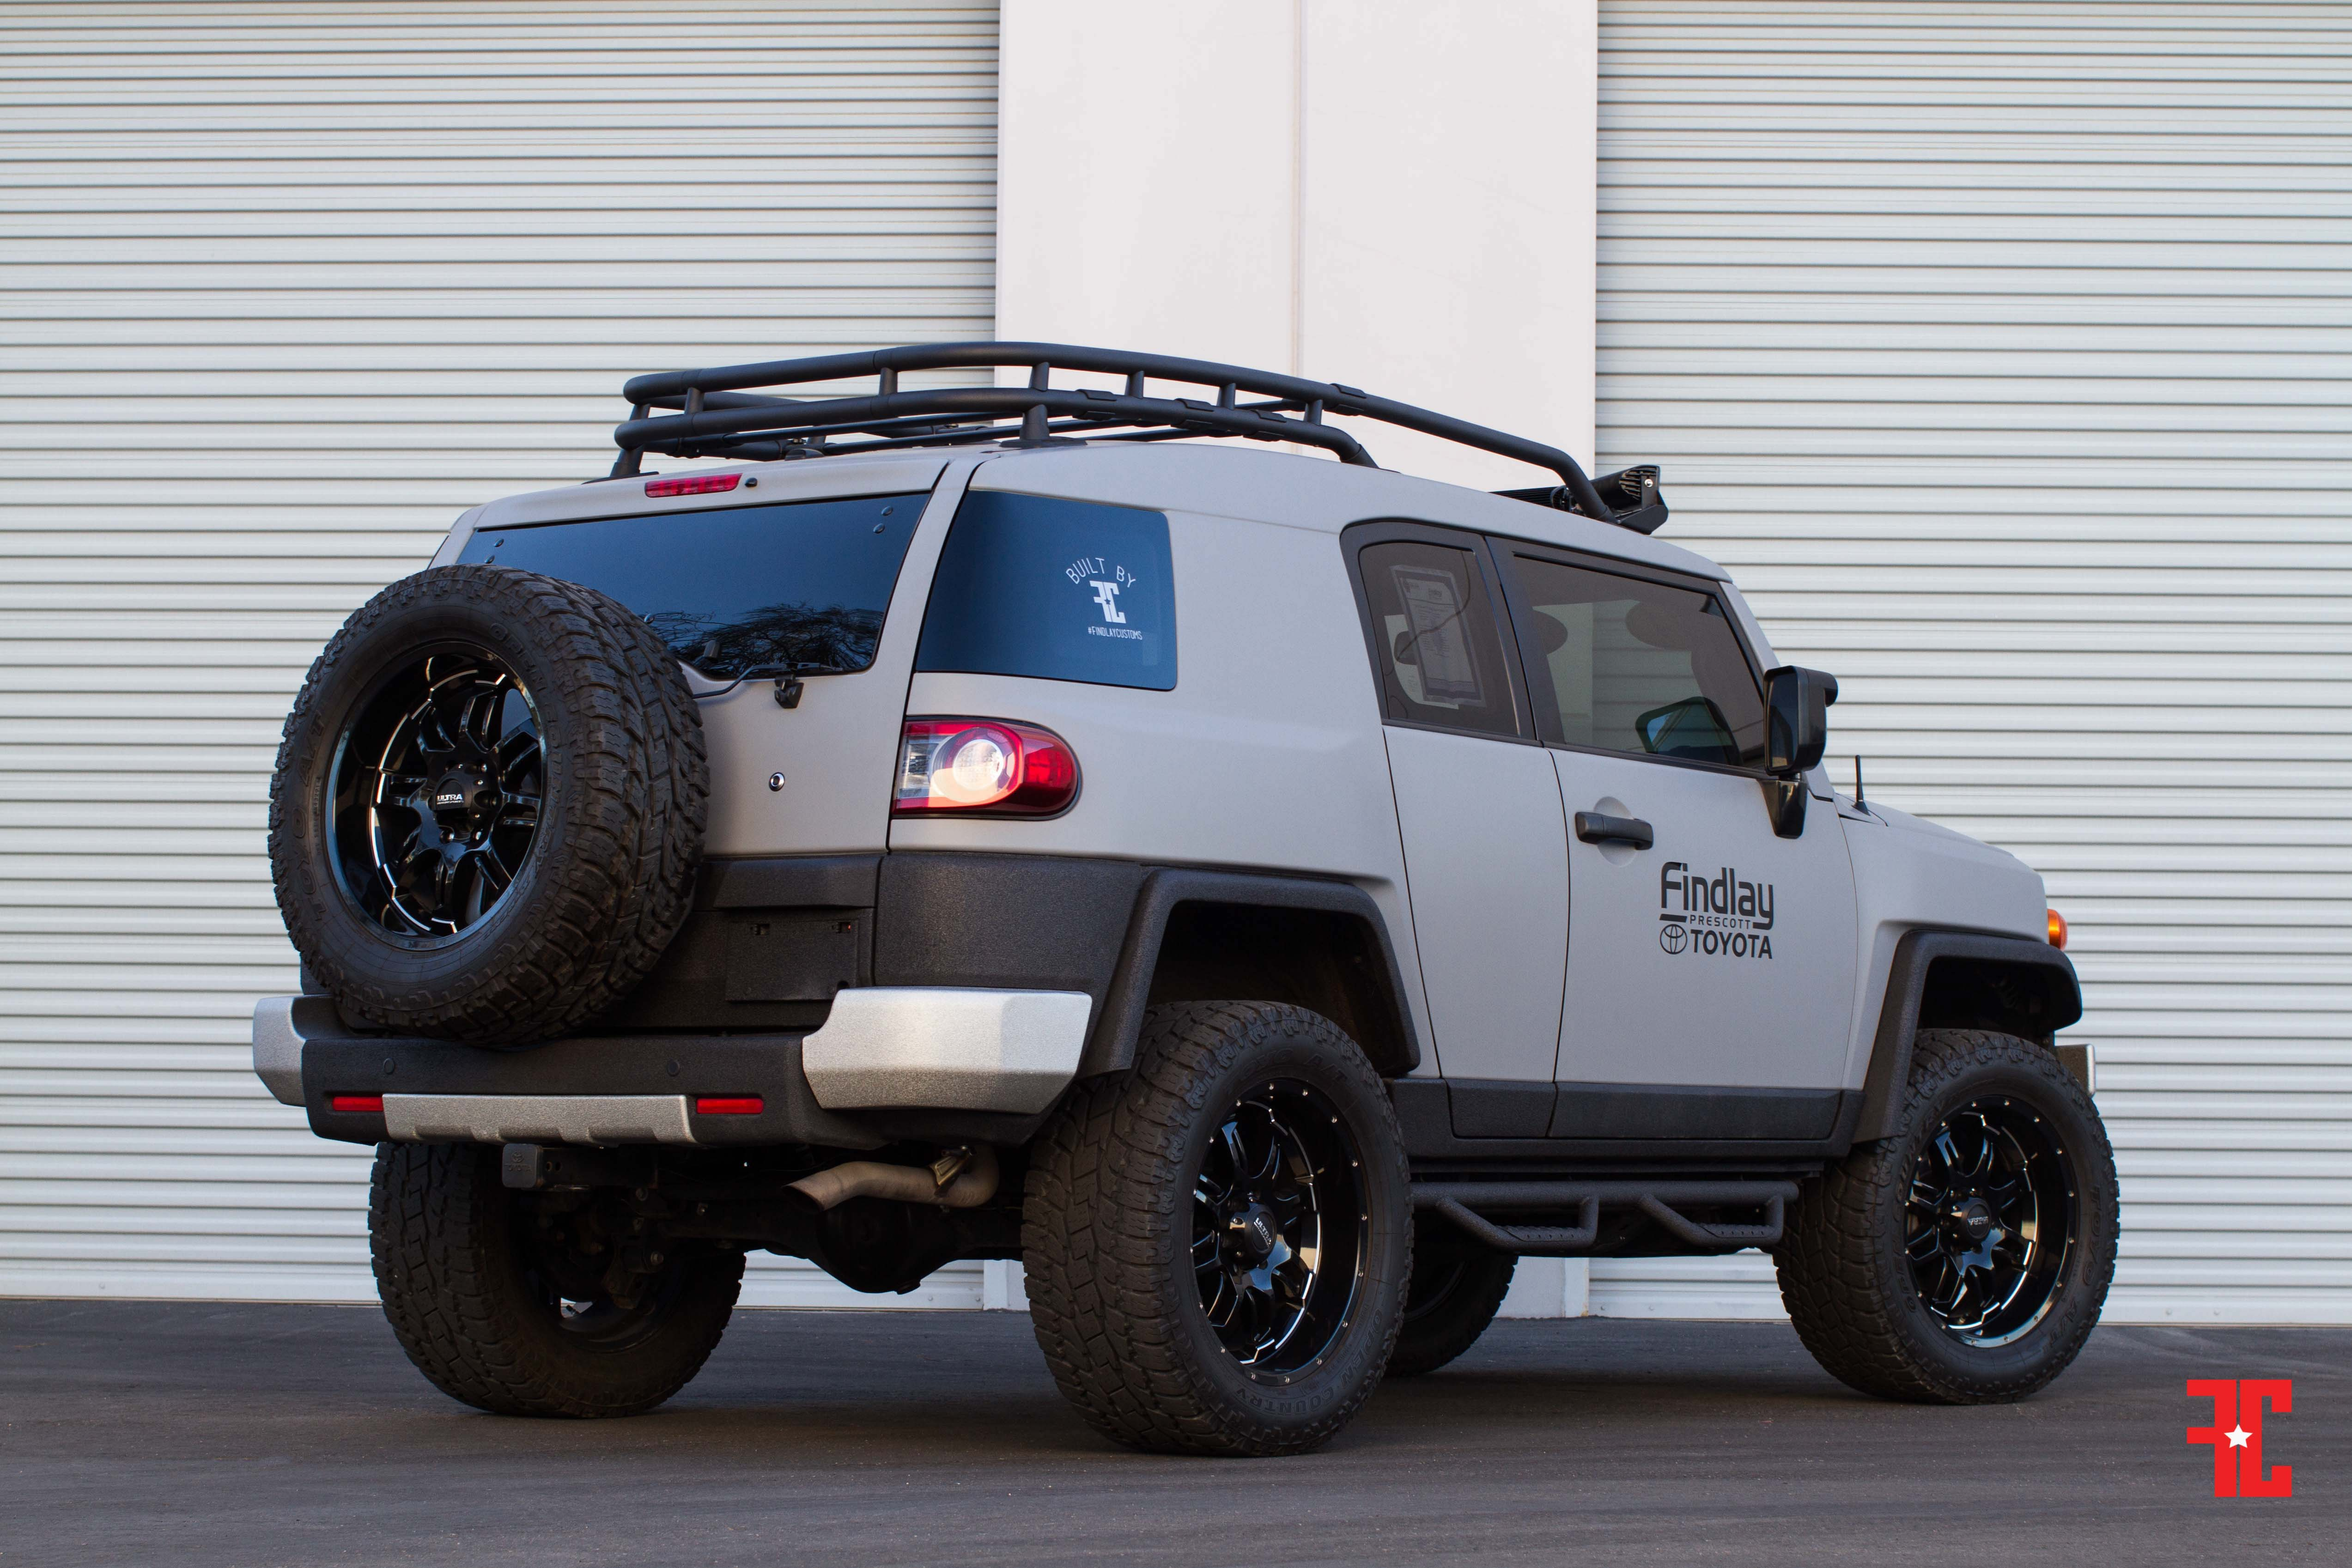 2014 Toyota Fj Cruiser Prescott Edition Findlay Customs